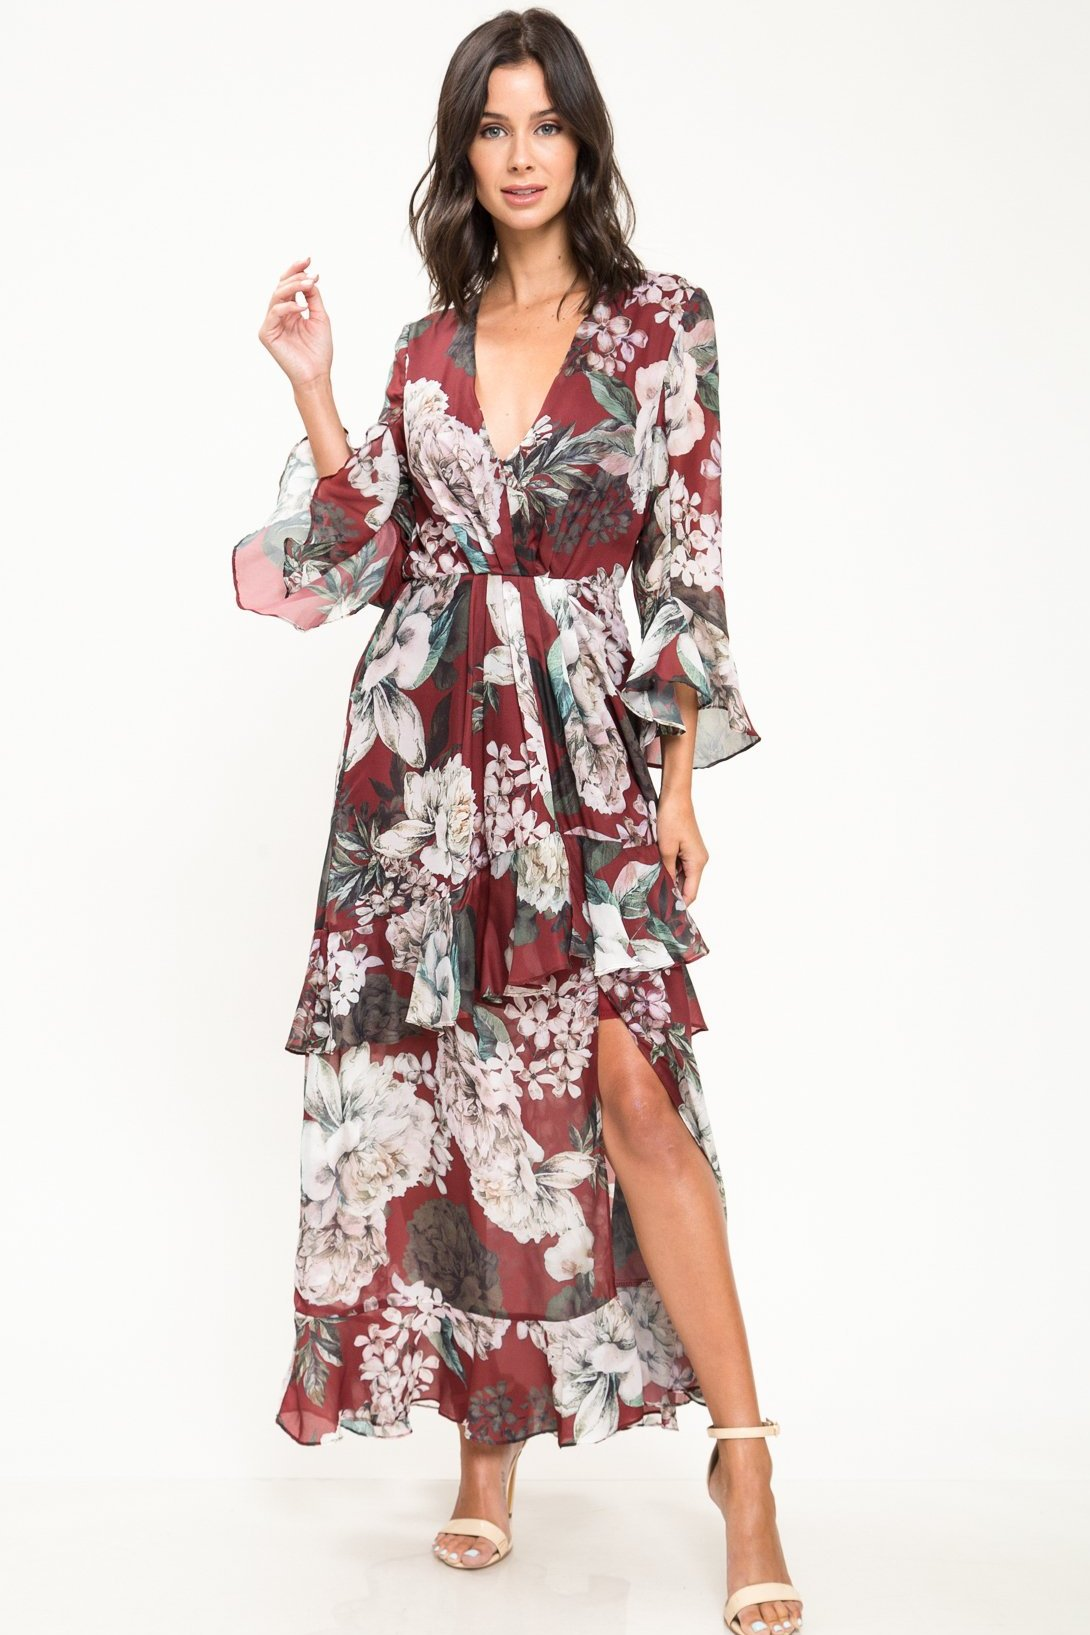 Just A Girl Floral Maxi Dress - Geegeebae